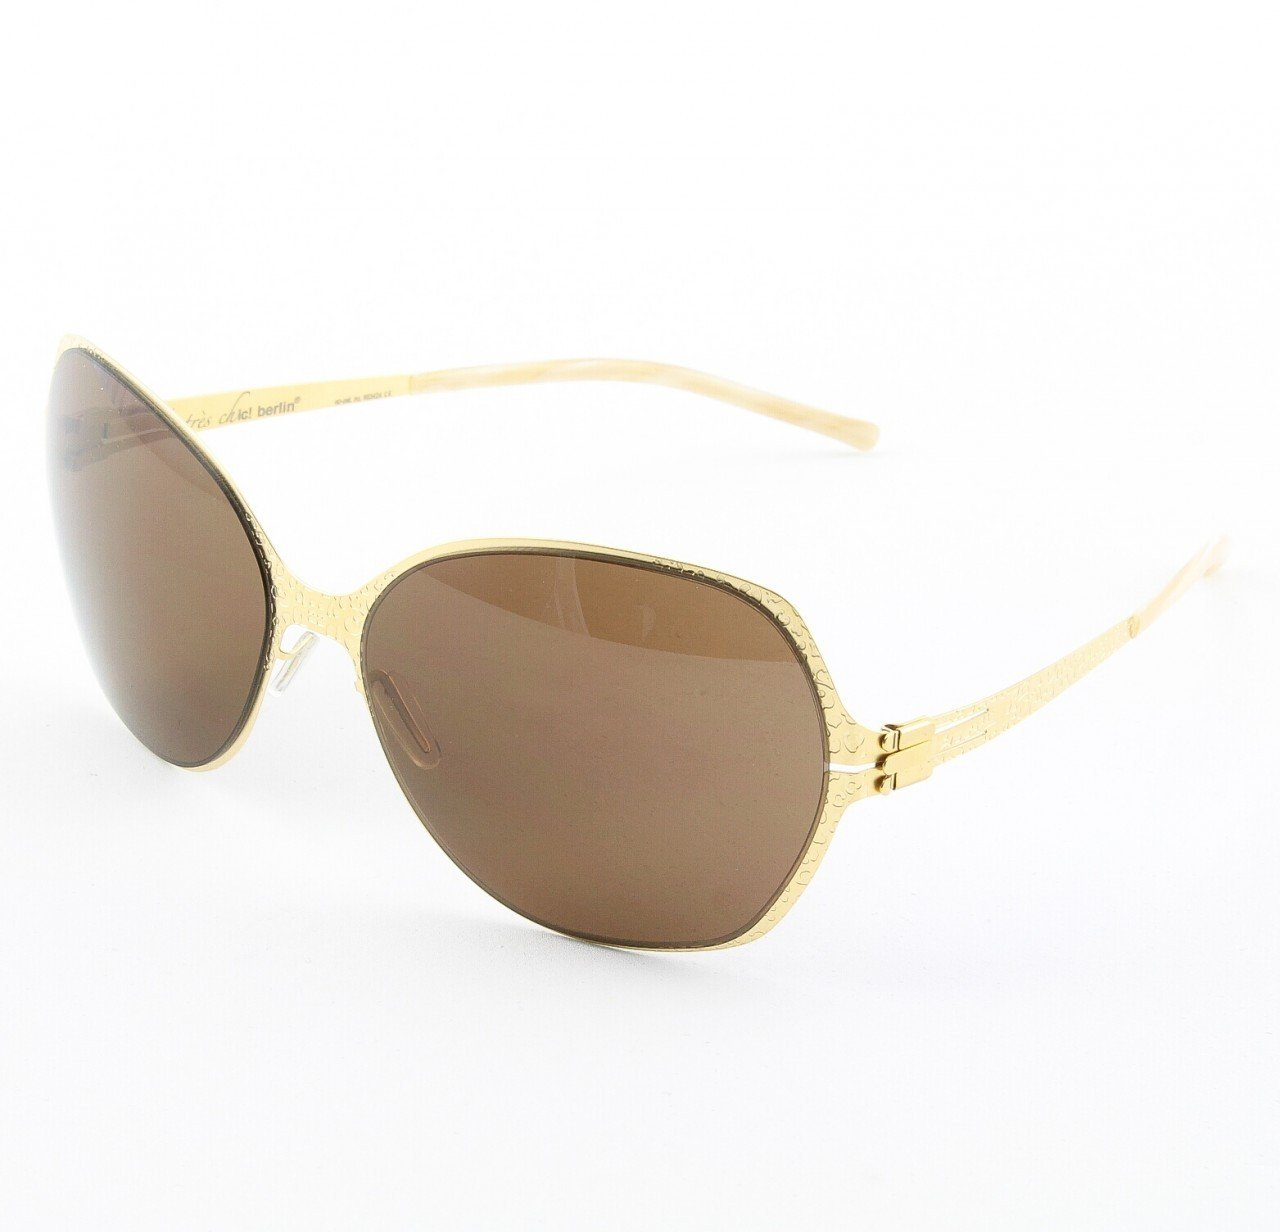 ic! Berlin Feline Sunglasses Col. Gold with Brown Lenses